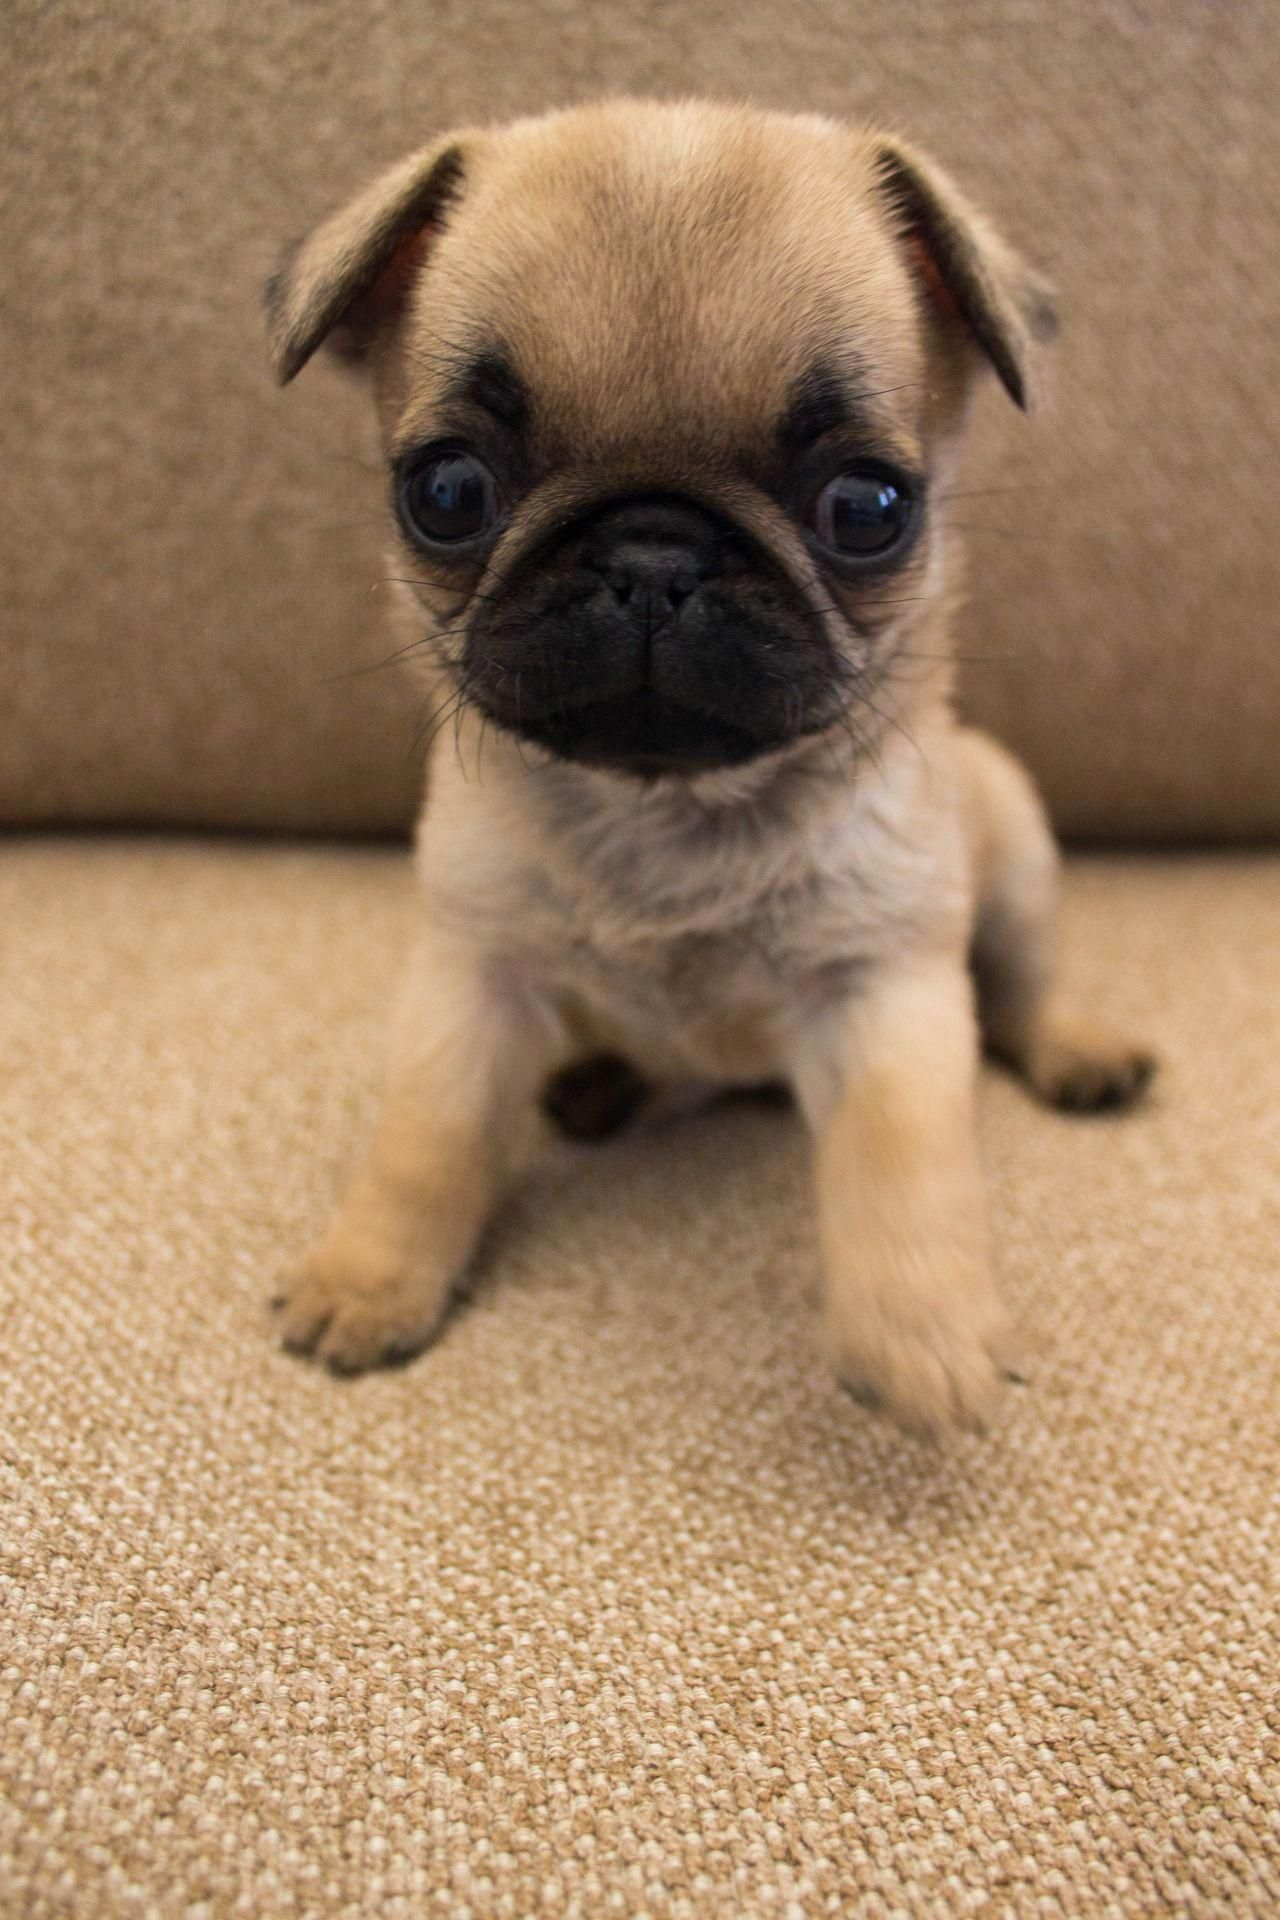 Learn Even More Details On Pug Dogs Take A Look At Our Site